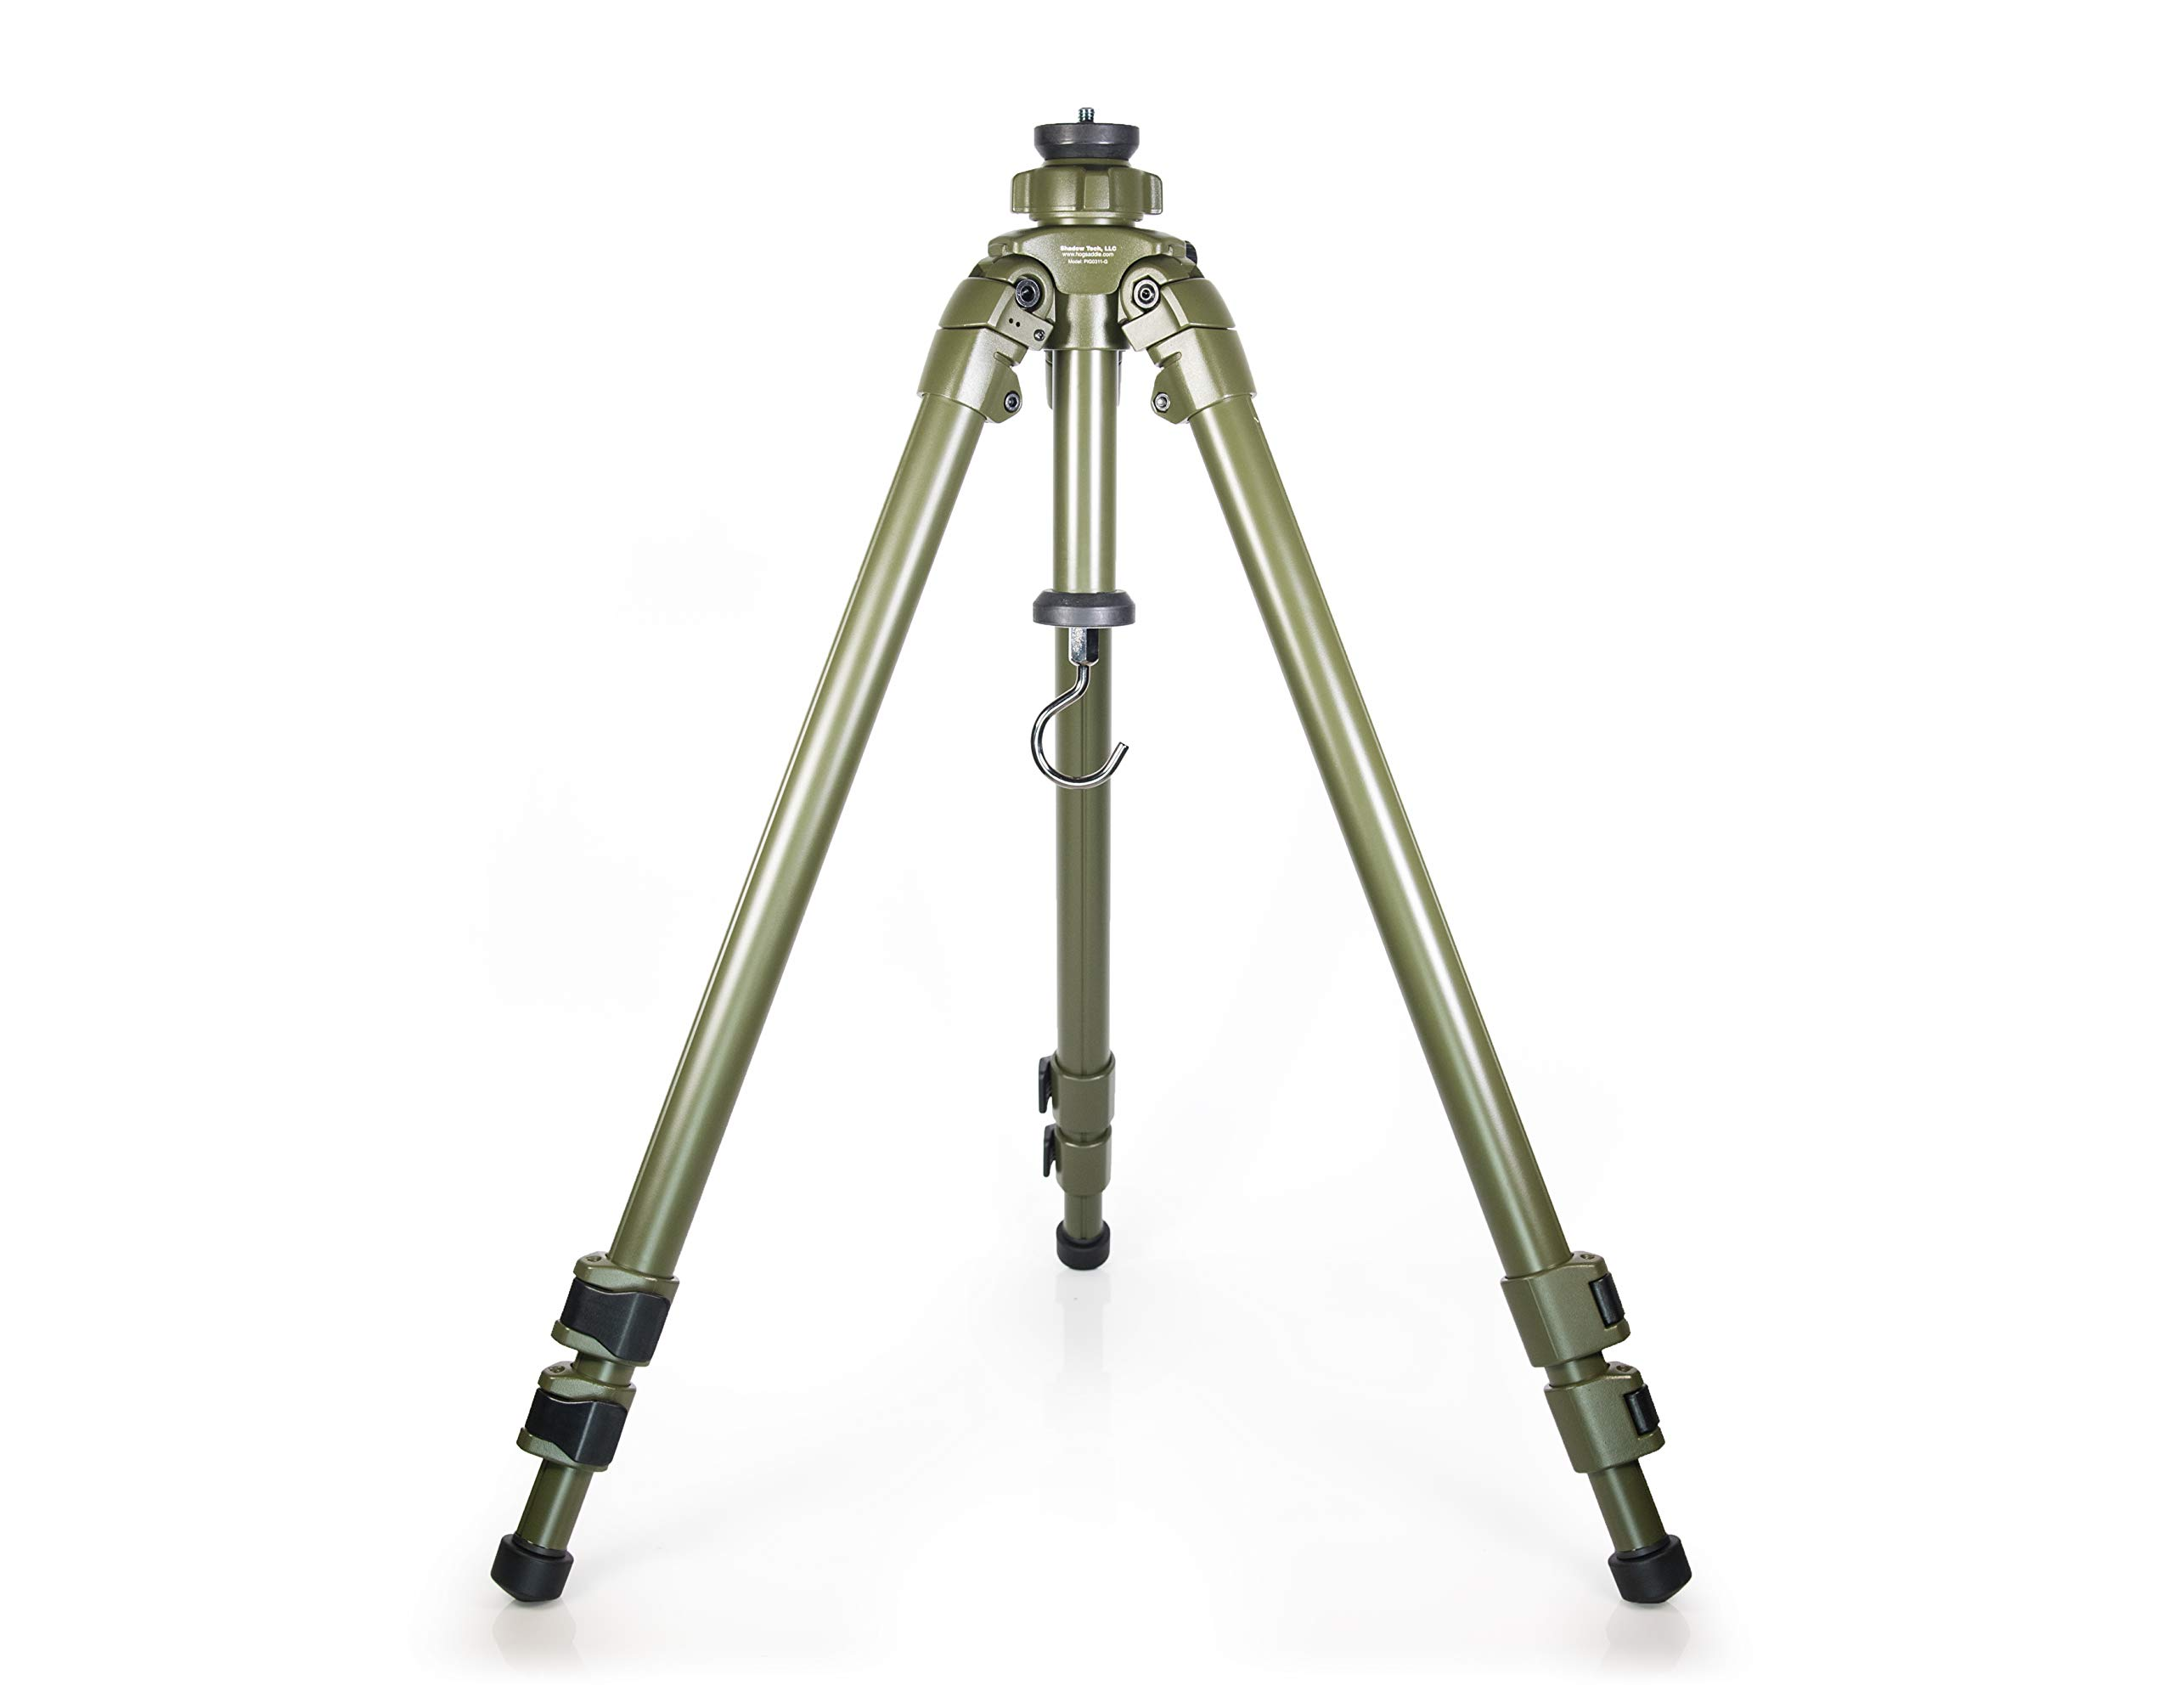 Shadow Tech, LLC PIG0311 Field Tripod, OD Green (Tall)